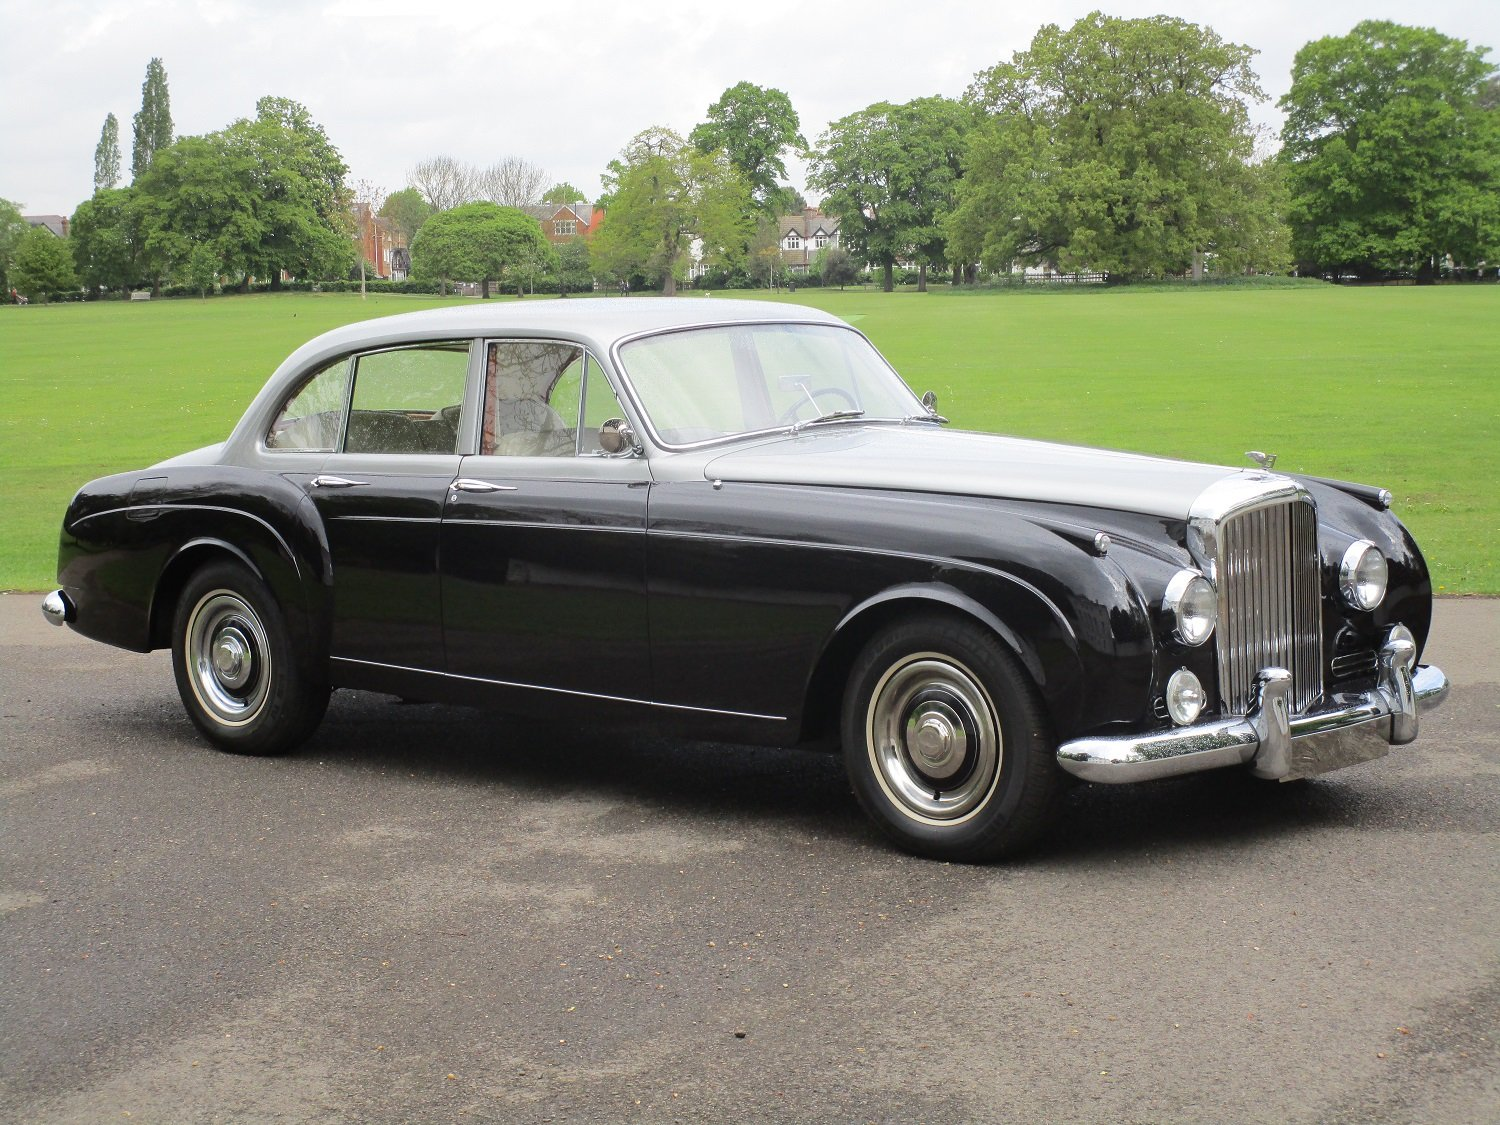 1957 Bentley S1 Continental Six Light Flying Spur (LHD) For Sale (picture 1 of 1)